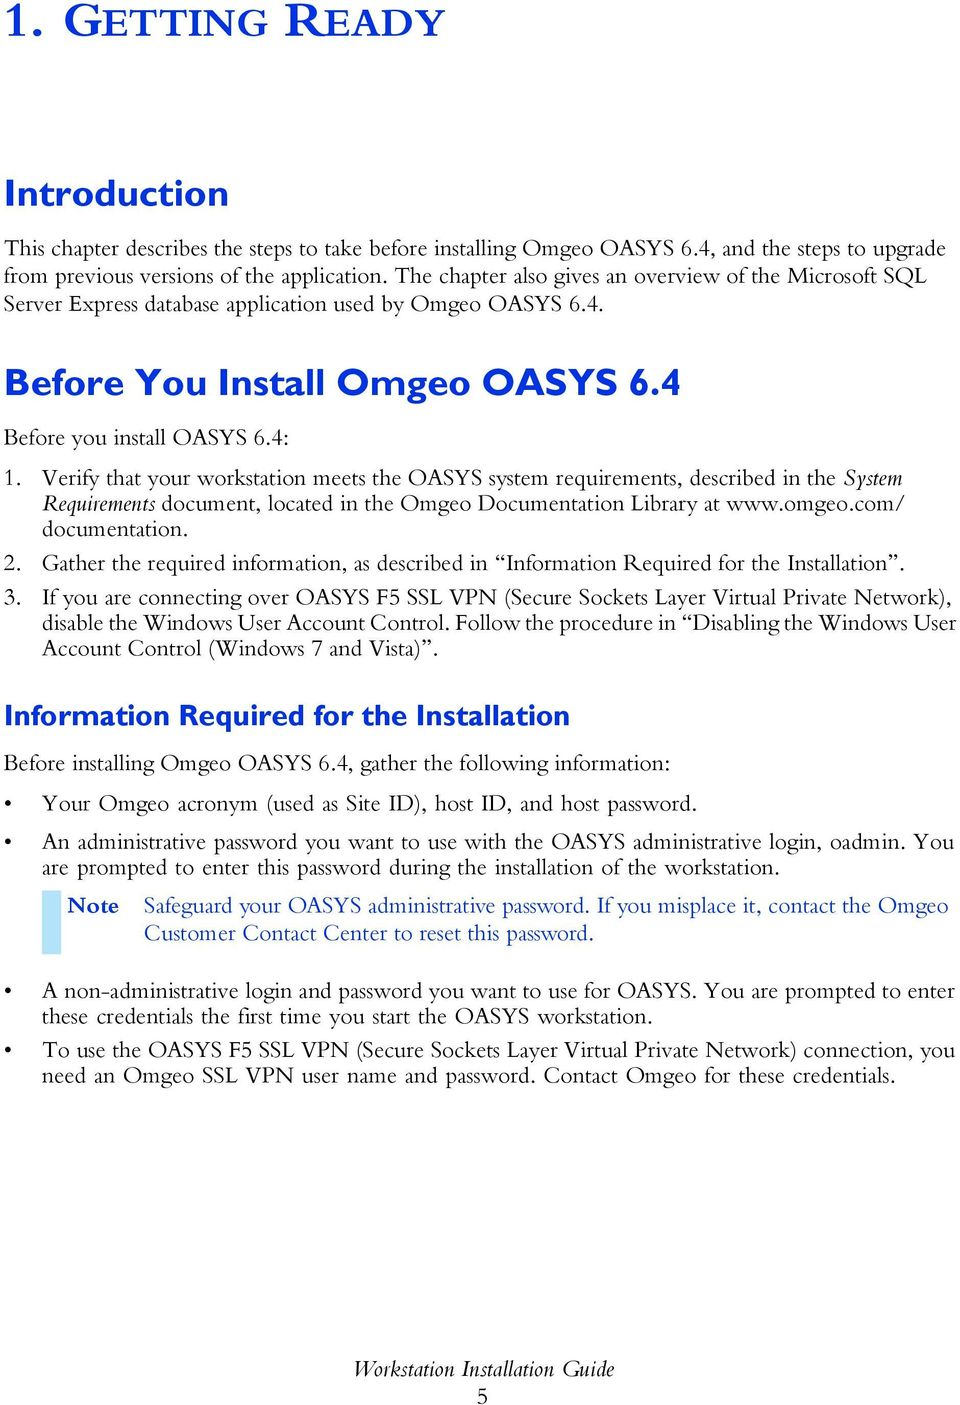 Verify that your workstation meets the OASYS system requirements, described in the System Requirements document, located in the Omgeo Documentation Library at www.omgeo.com/ documentation. 2.